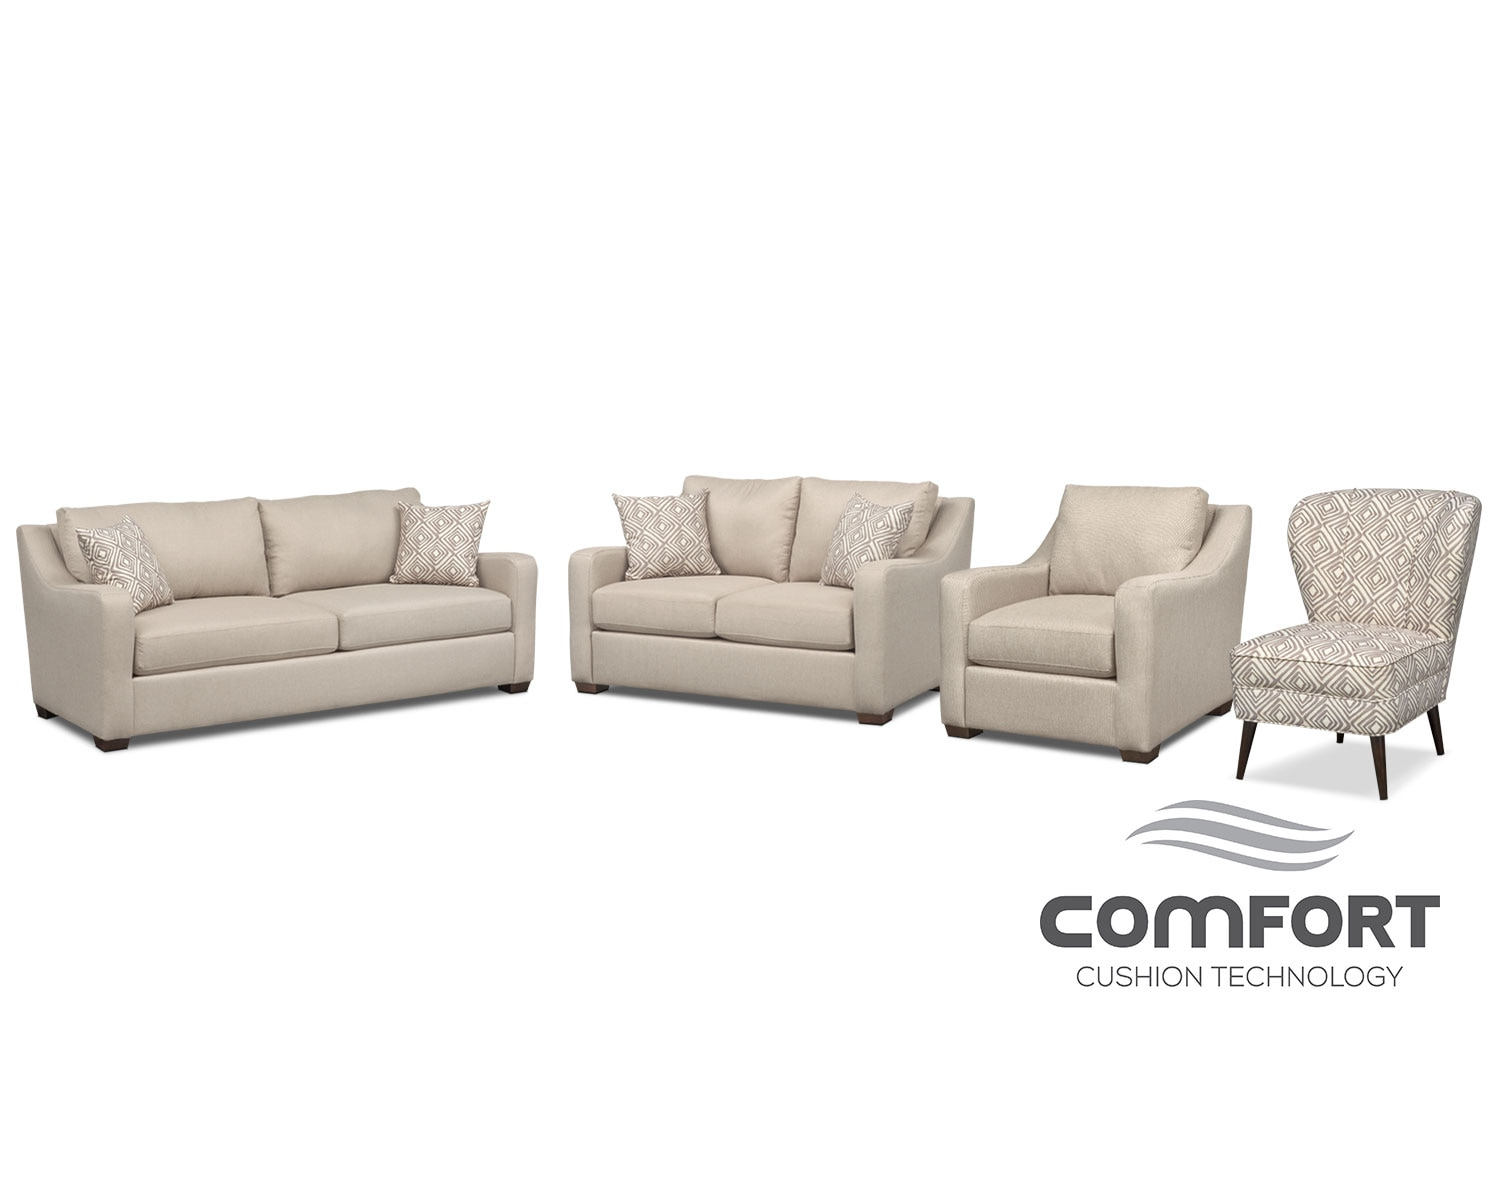 The Jules Comfort Collection - Cream